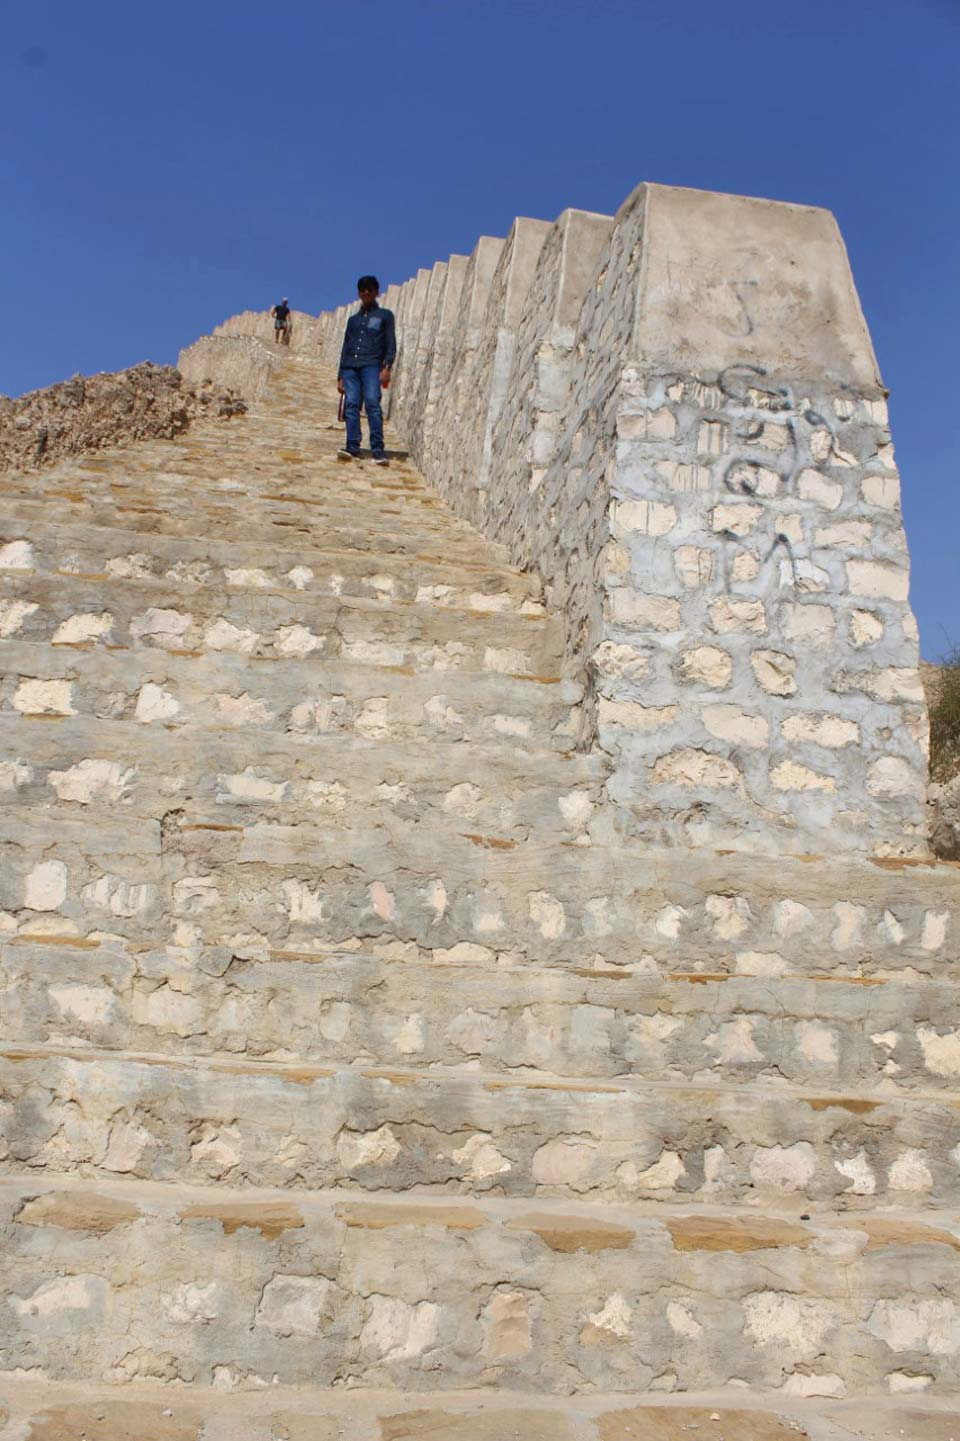 Habib Ur Rehman is climbing the stairs to reach the top of the Great Wall of Sindh, Rani Kot Fort